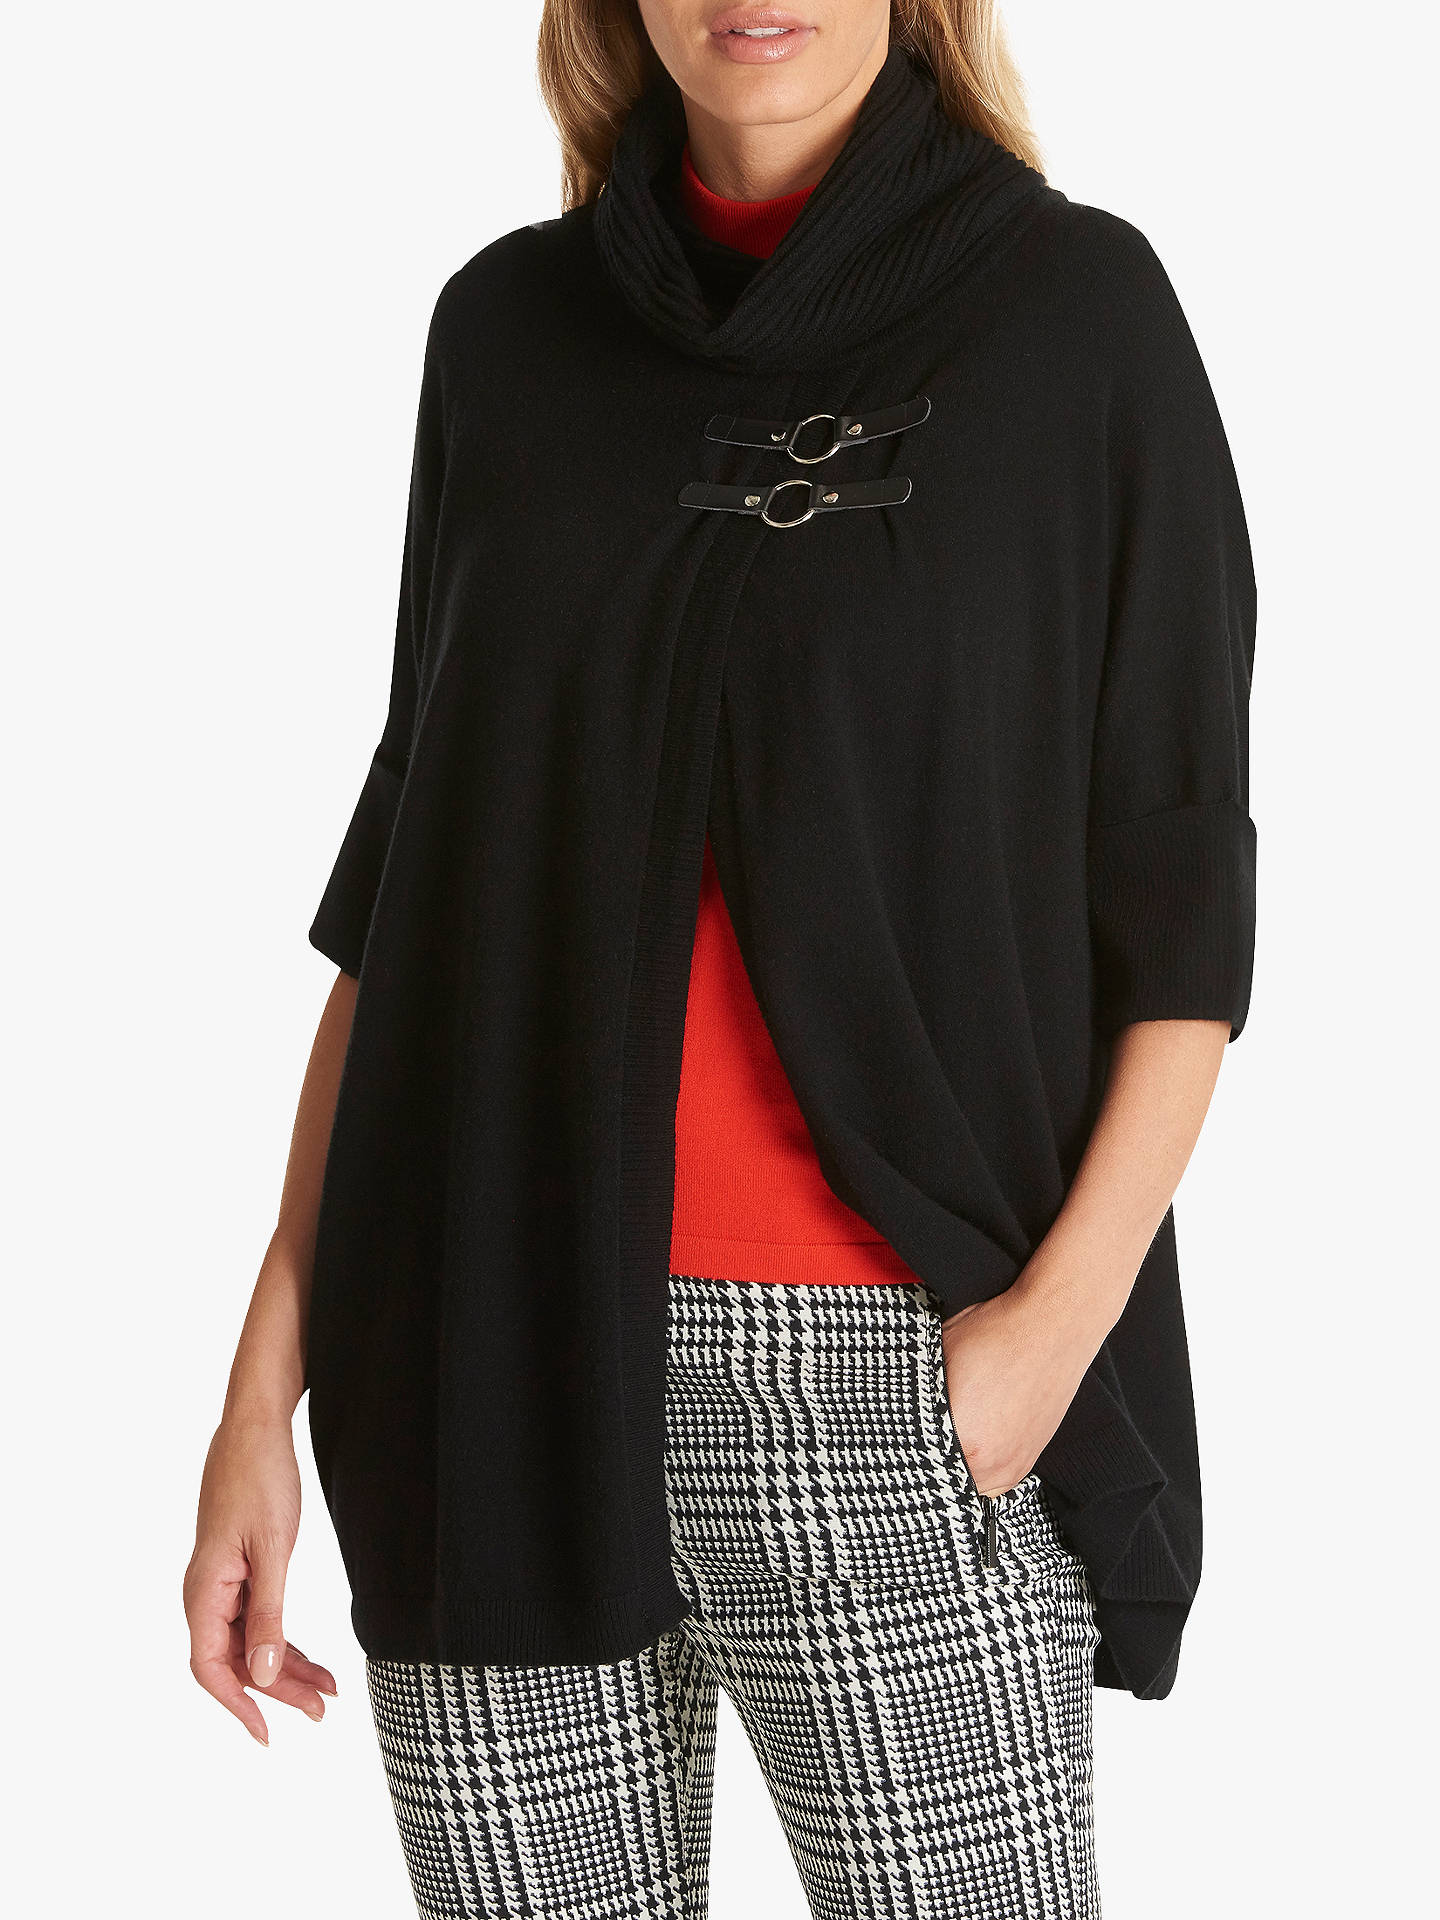 BuyBetty Barclay Wrapped Cowl Neck Buckled Jumper, Black, 10 Online at johnlewis.com